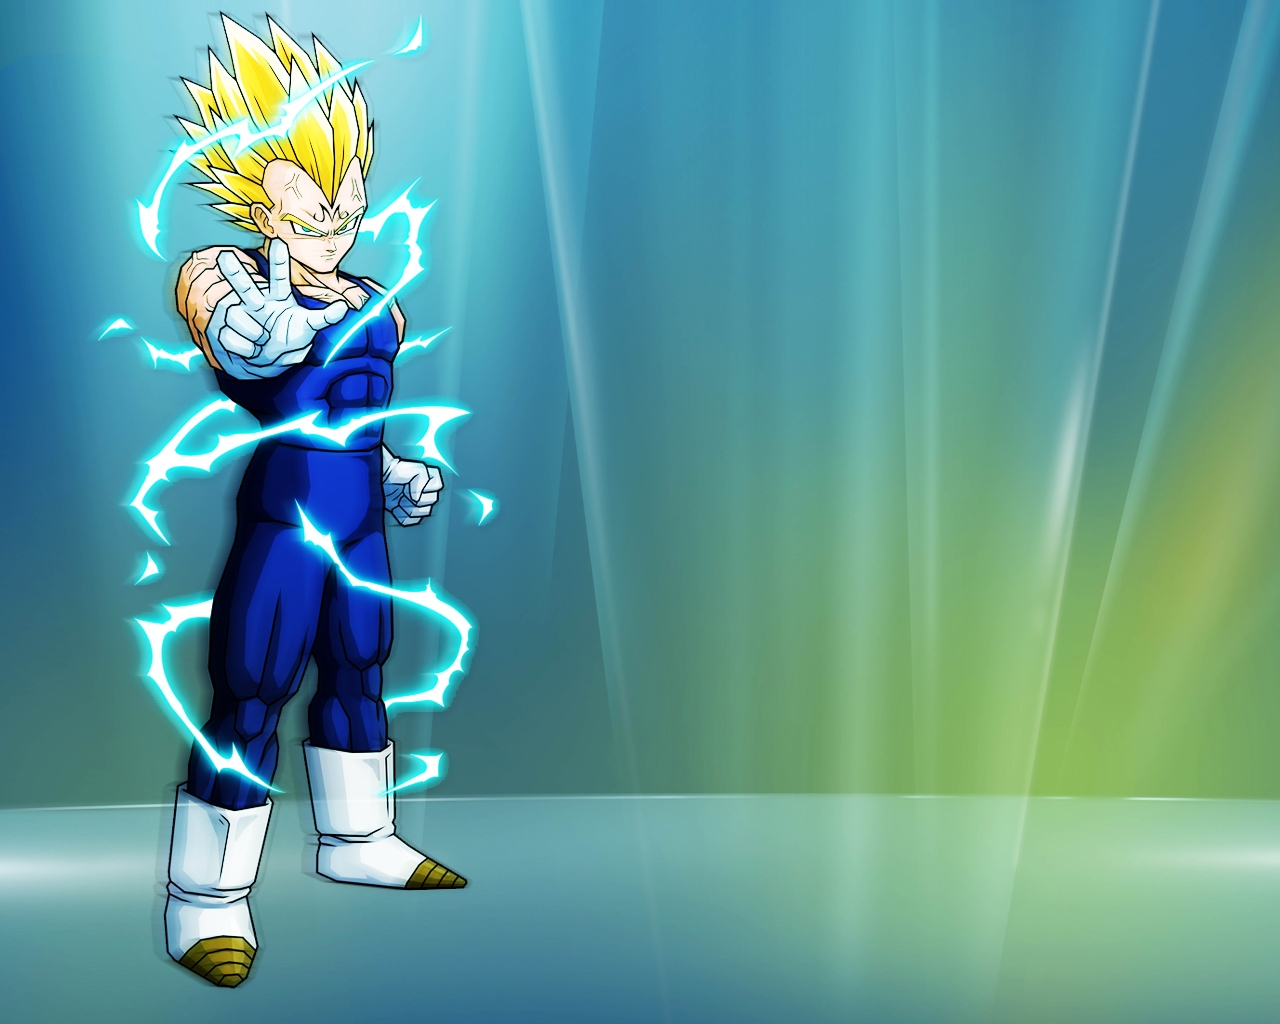 Vegeta - Images Wallpaper